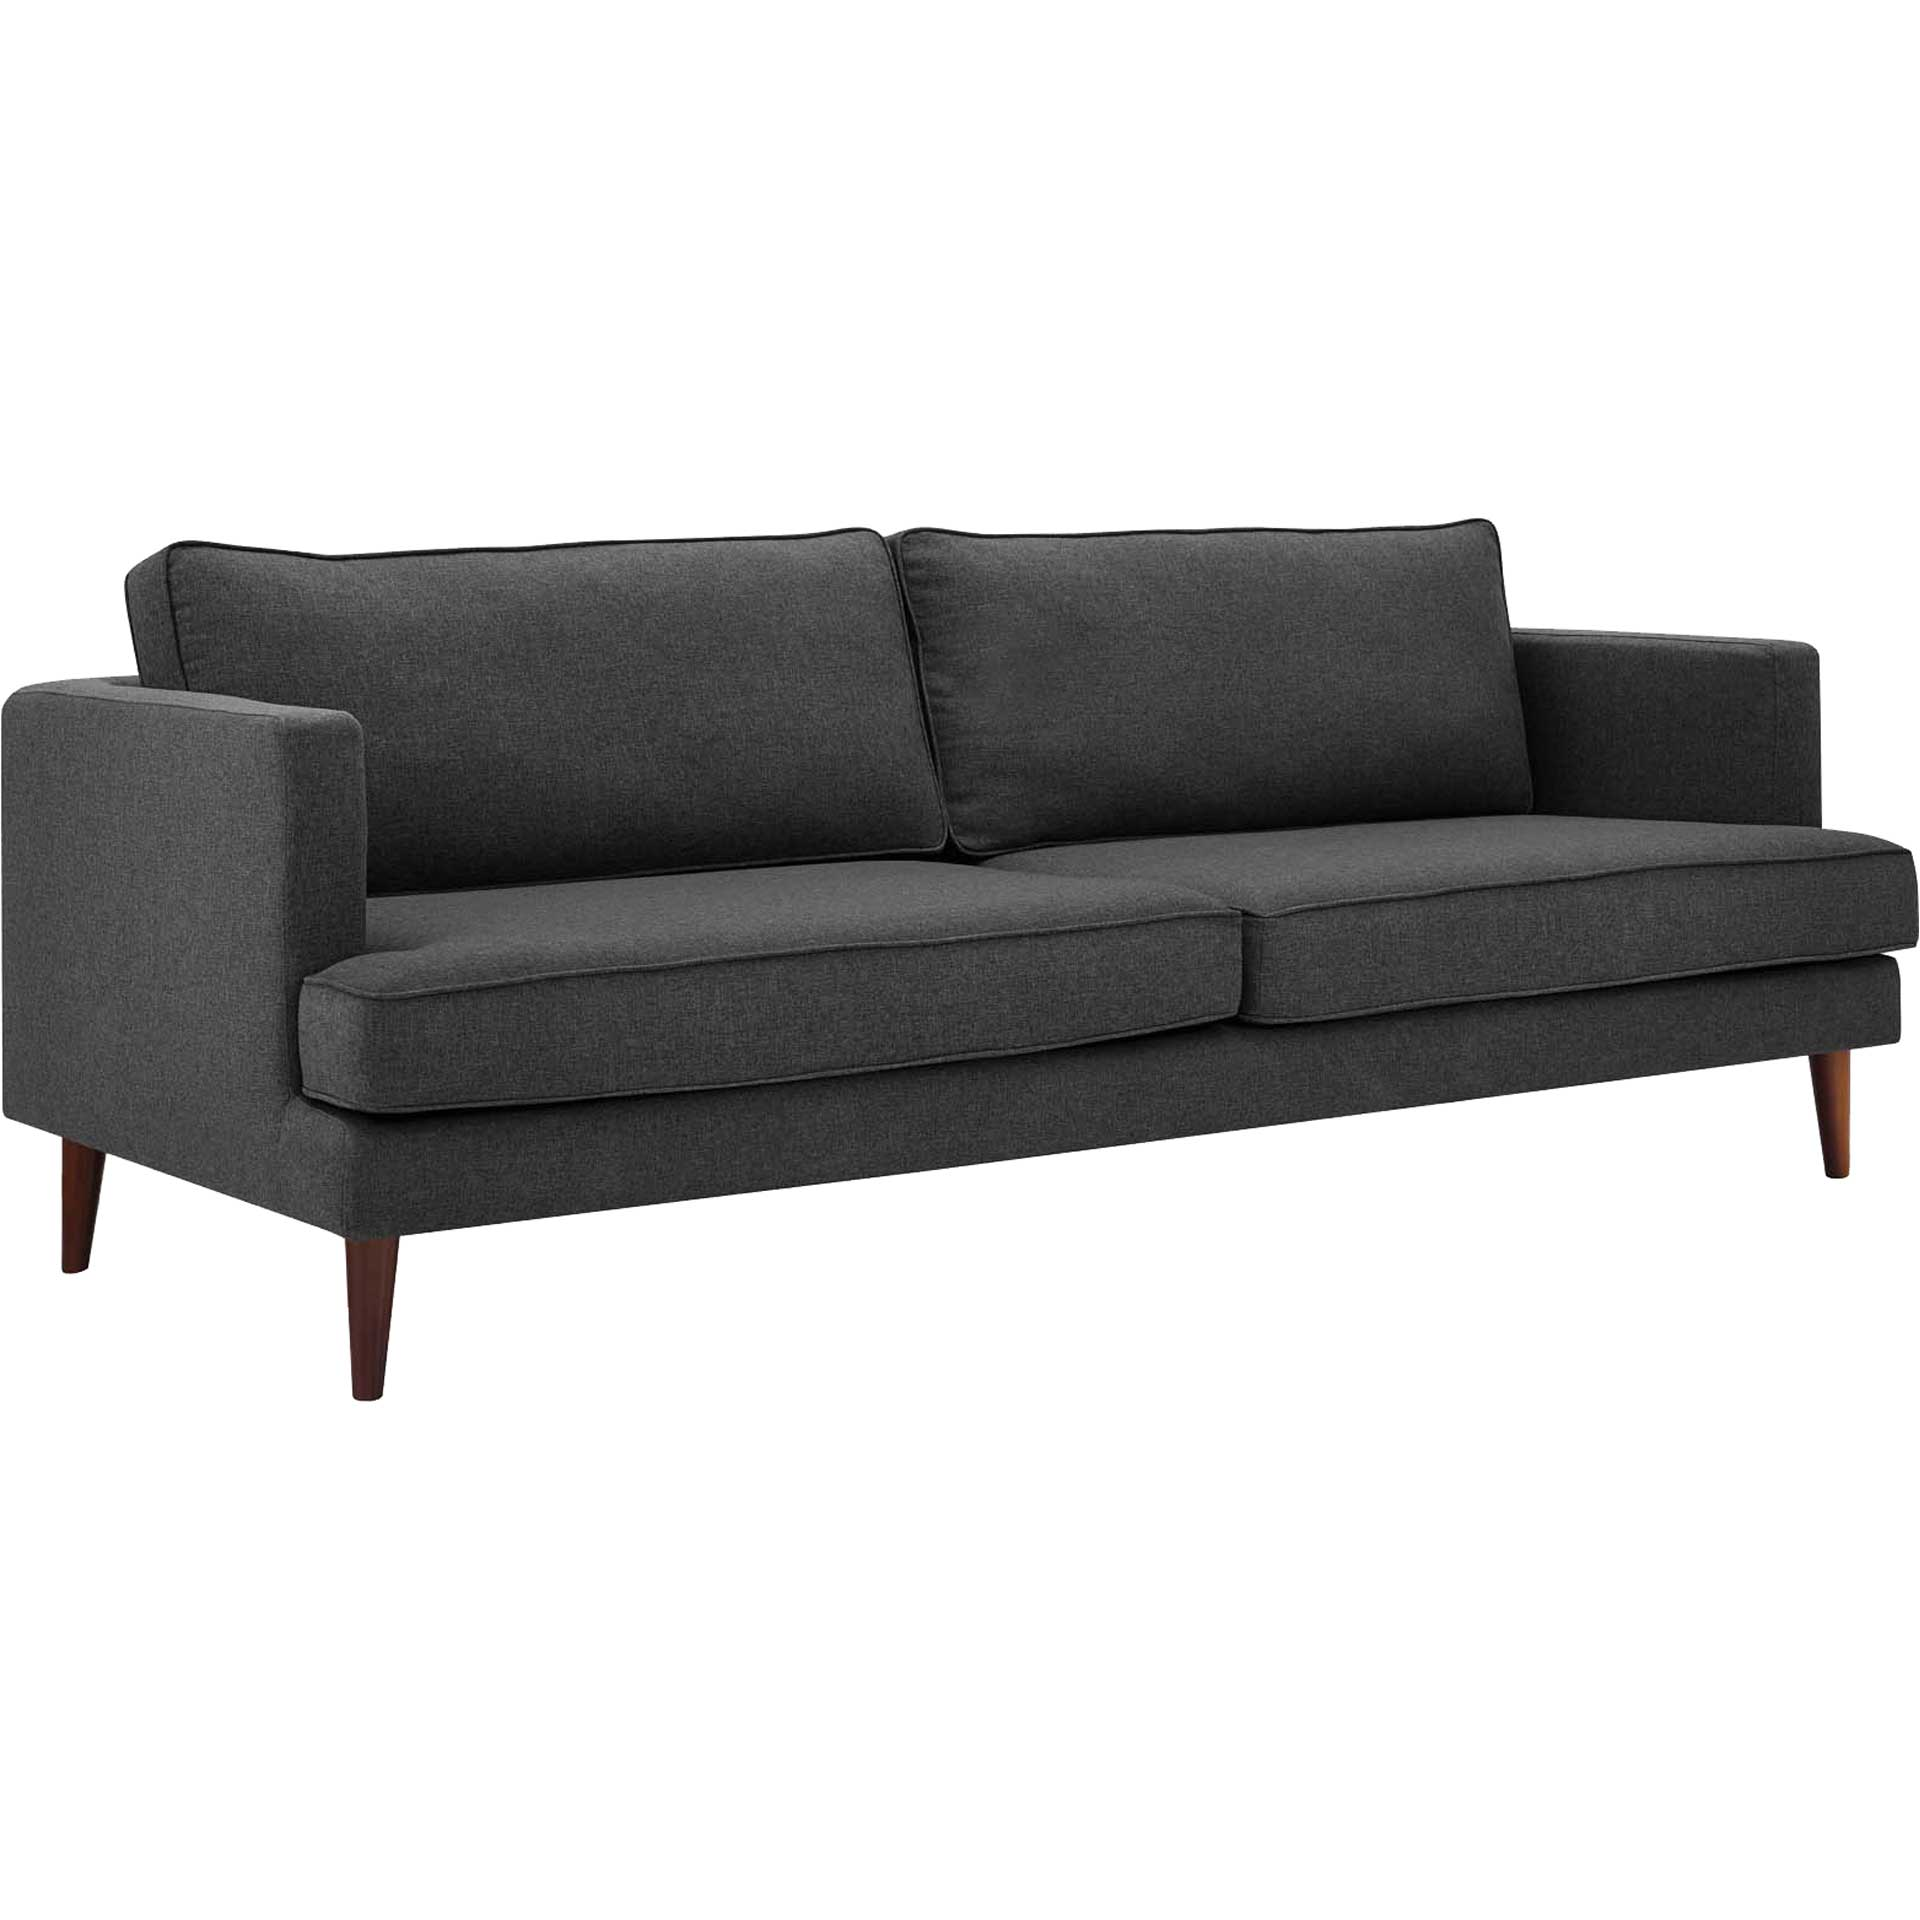 Aisley Upholstered Fabric Sofa Gray